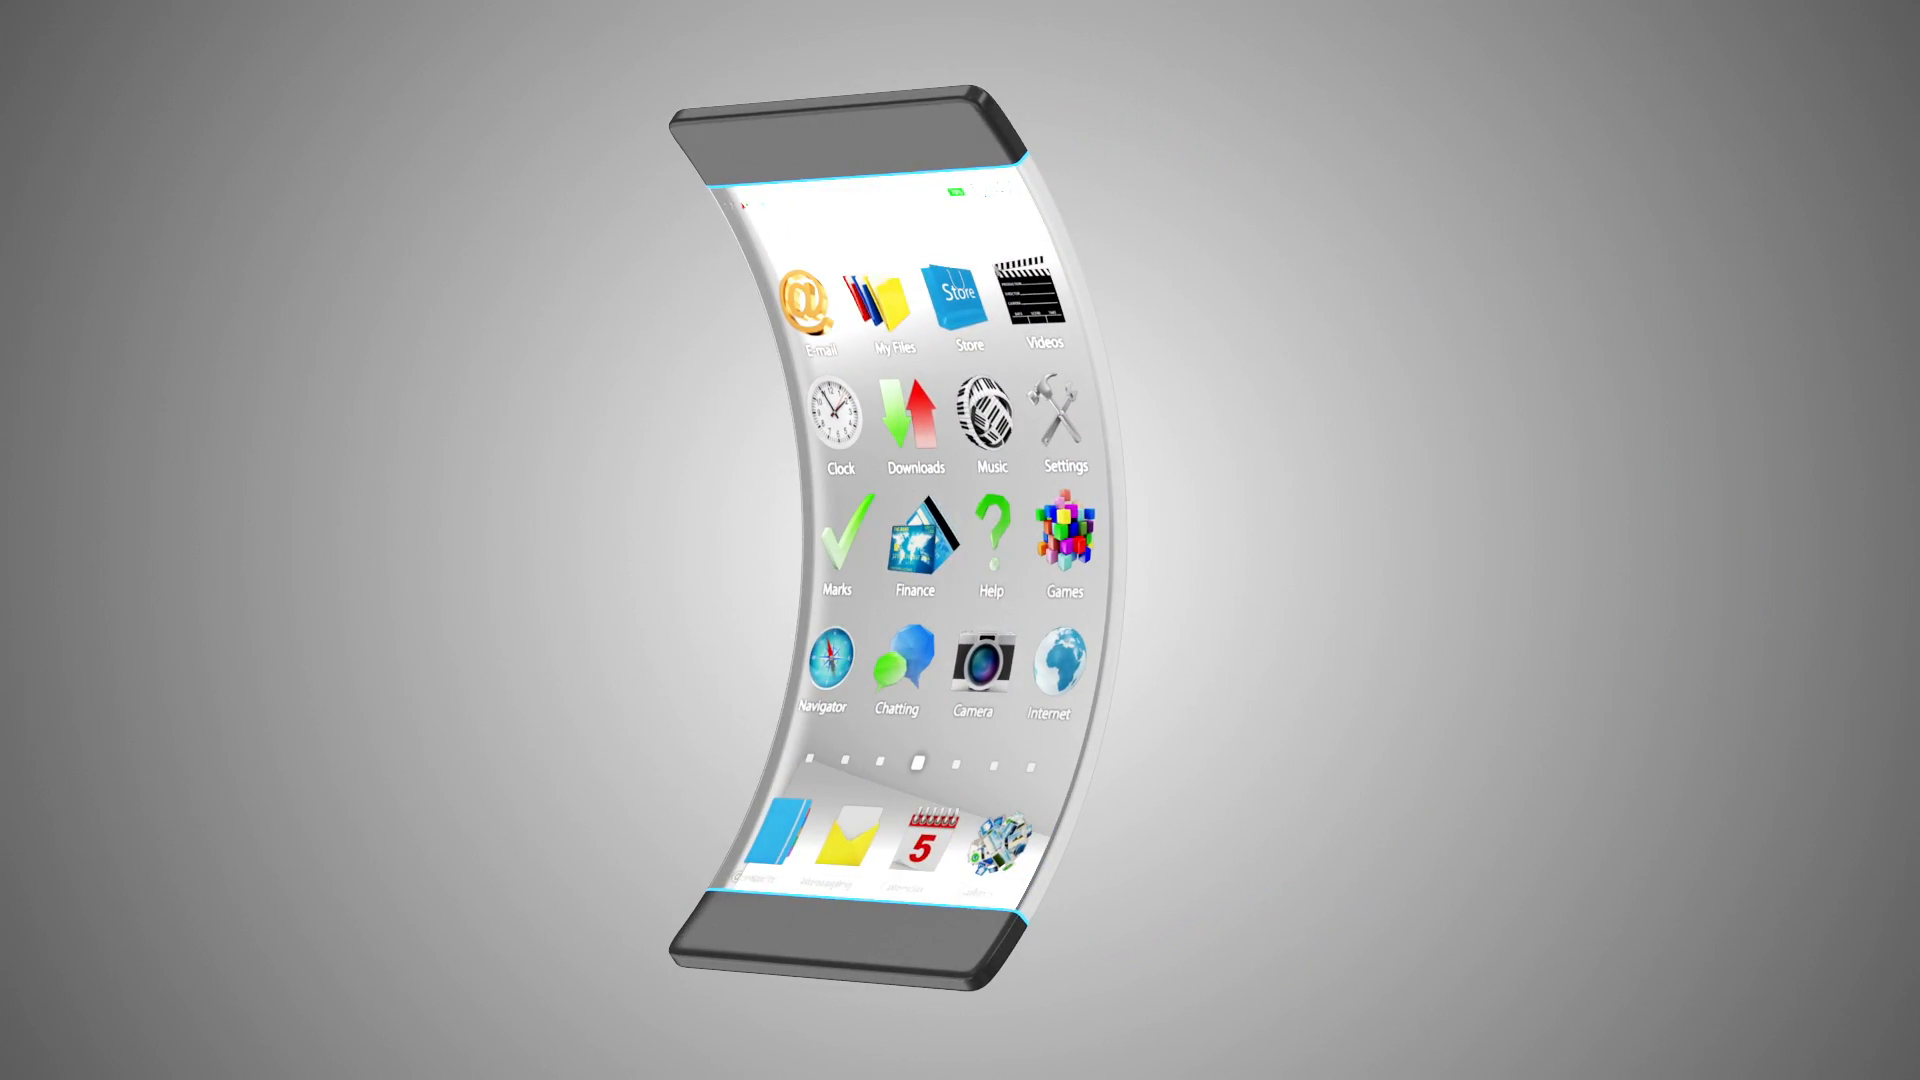 BENDABLE/TRANSPARENT PHONES   Advanced Technology and Innovation Concept. Modern Touchscreen Smart Phone with Transparent Display and Flexible Structure. Seamless Looping HQ Animation with Alpha Channel.